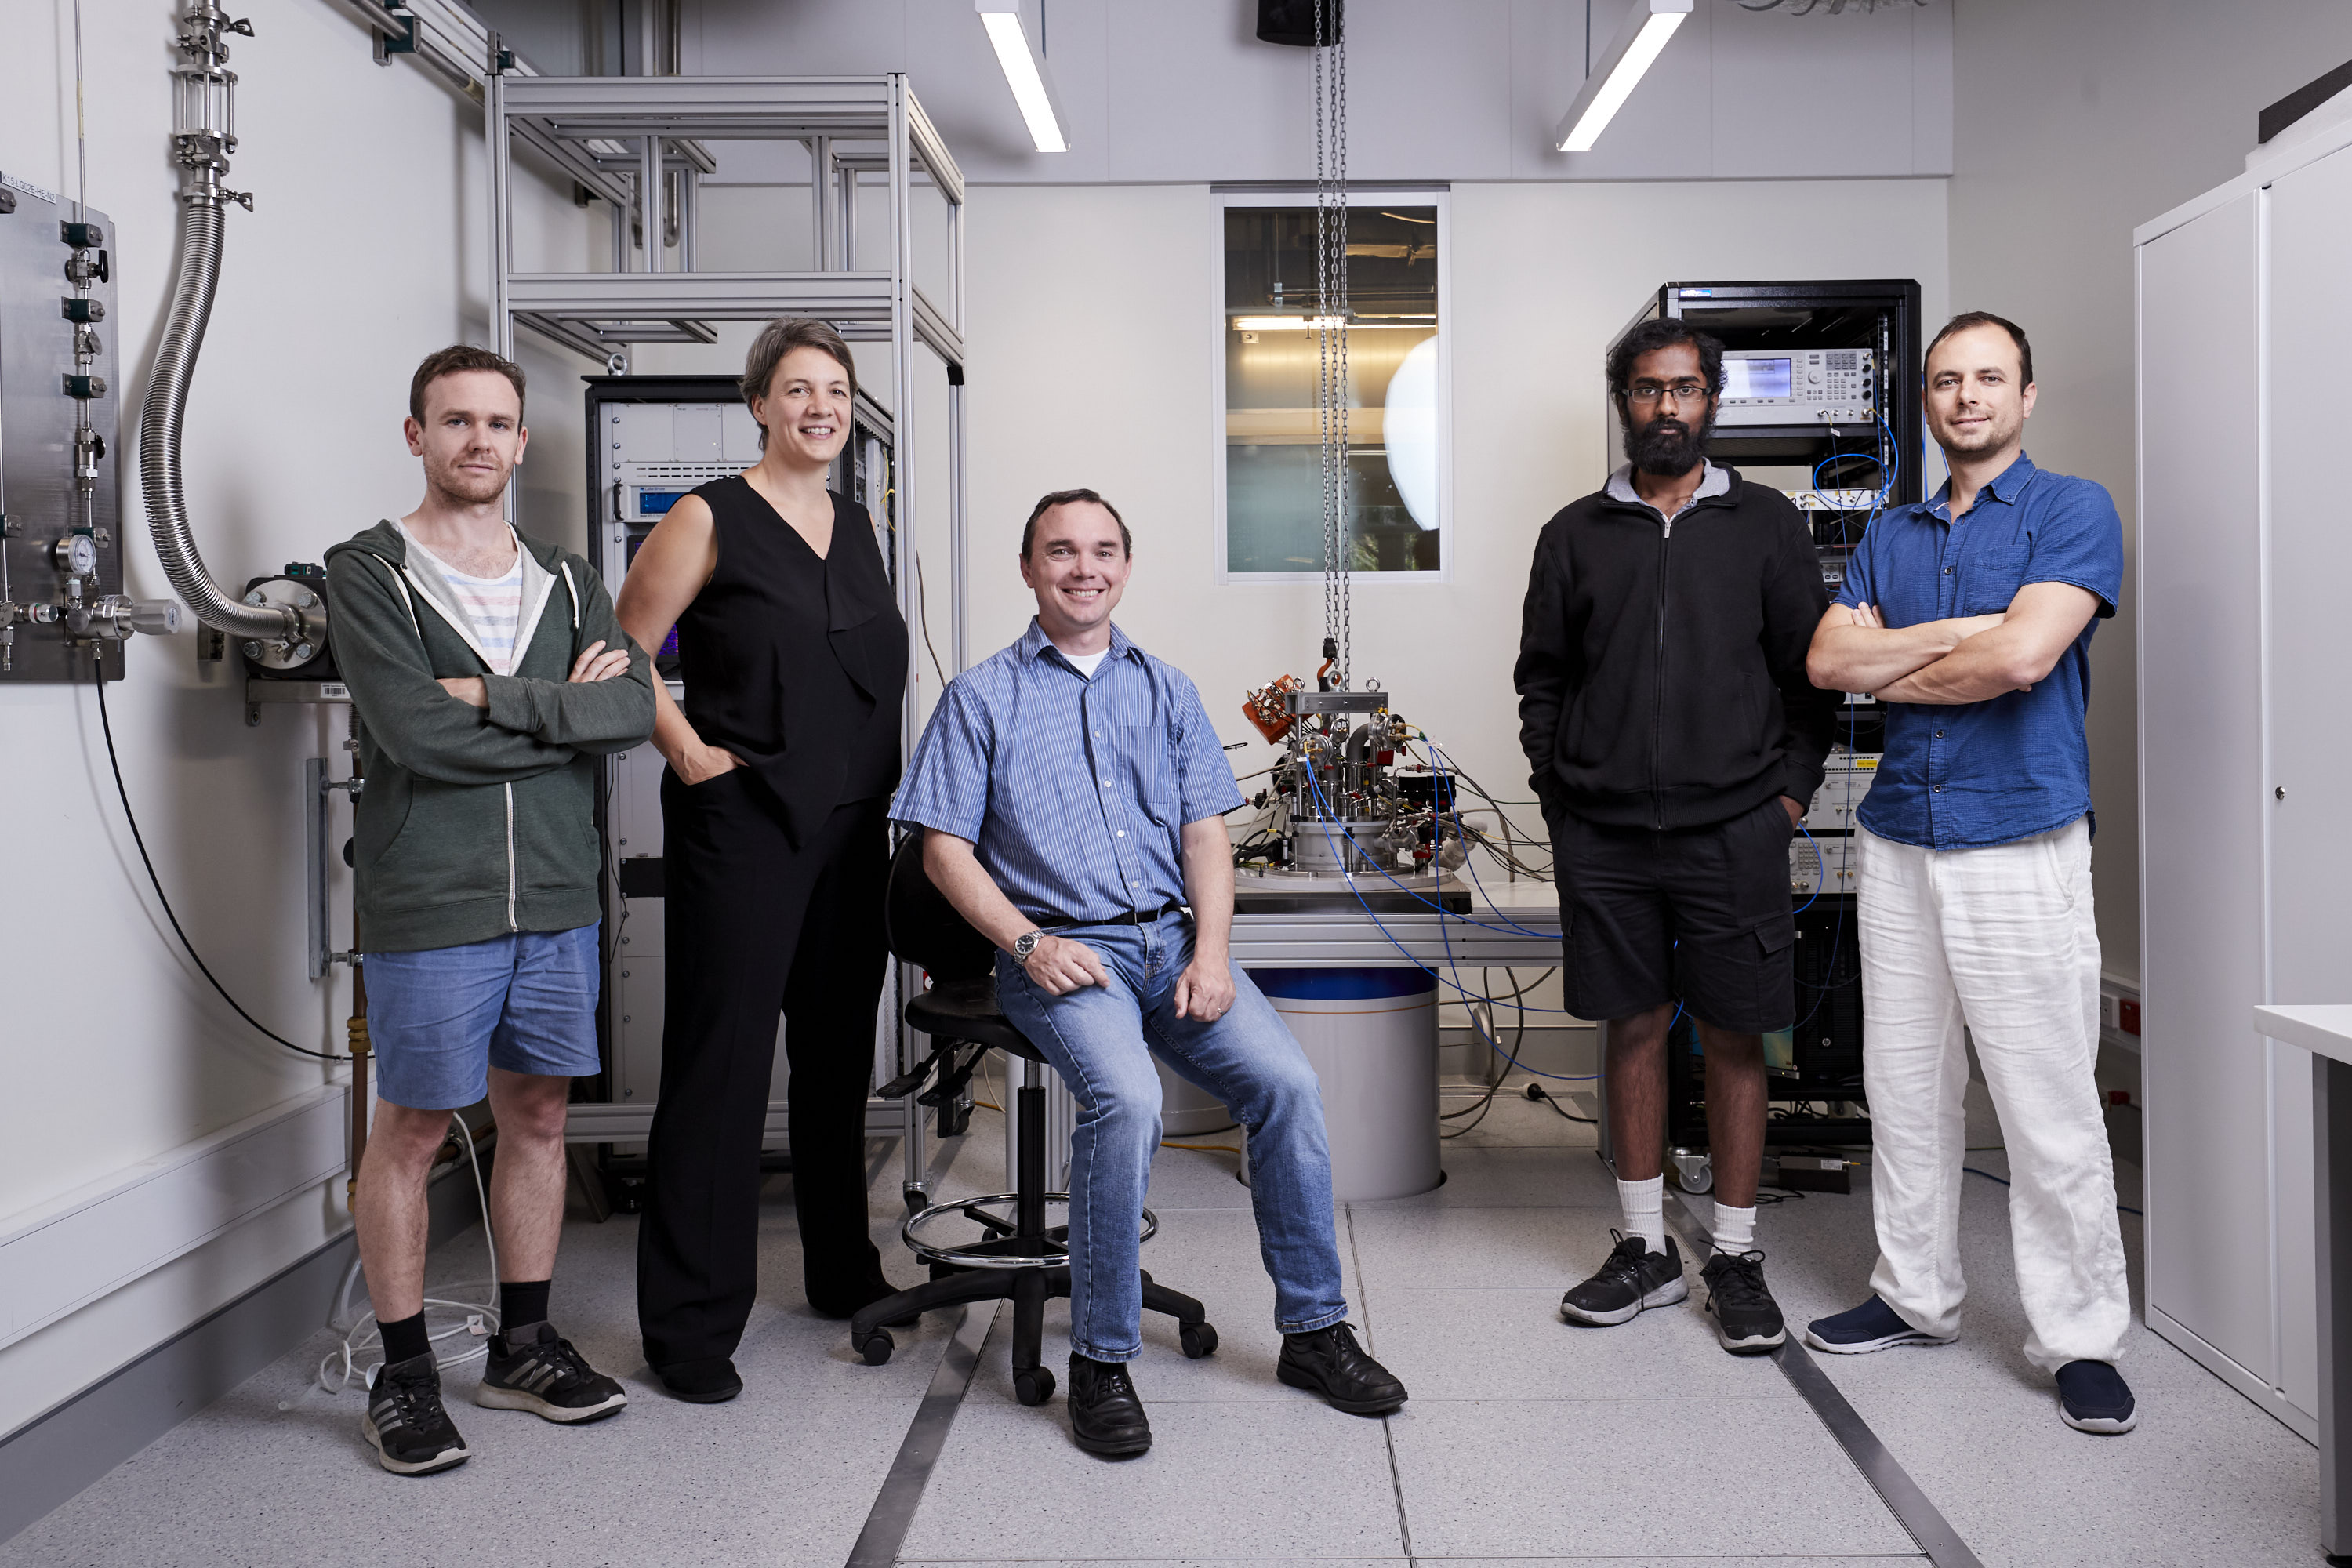 The authors of the paper, from left to right:  PhD student Mark R. Hogg; Professor Michelle  Simmons; Post Doc Matthew G. House; PhD student Prasanna Pakkiam; Post Doc Andrey Timofeev